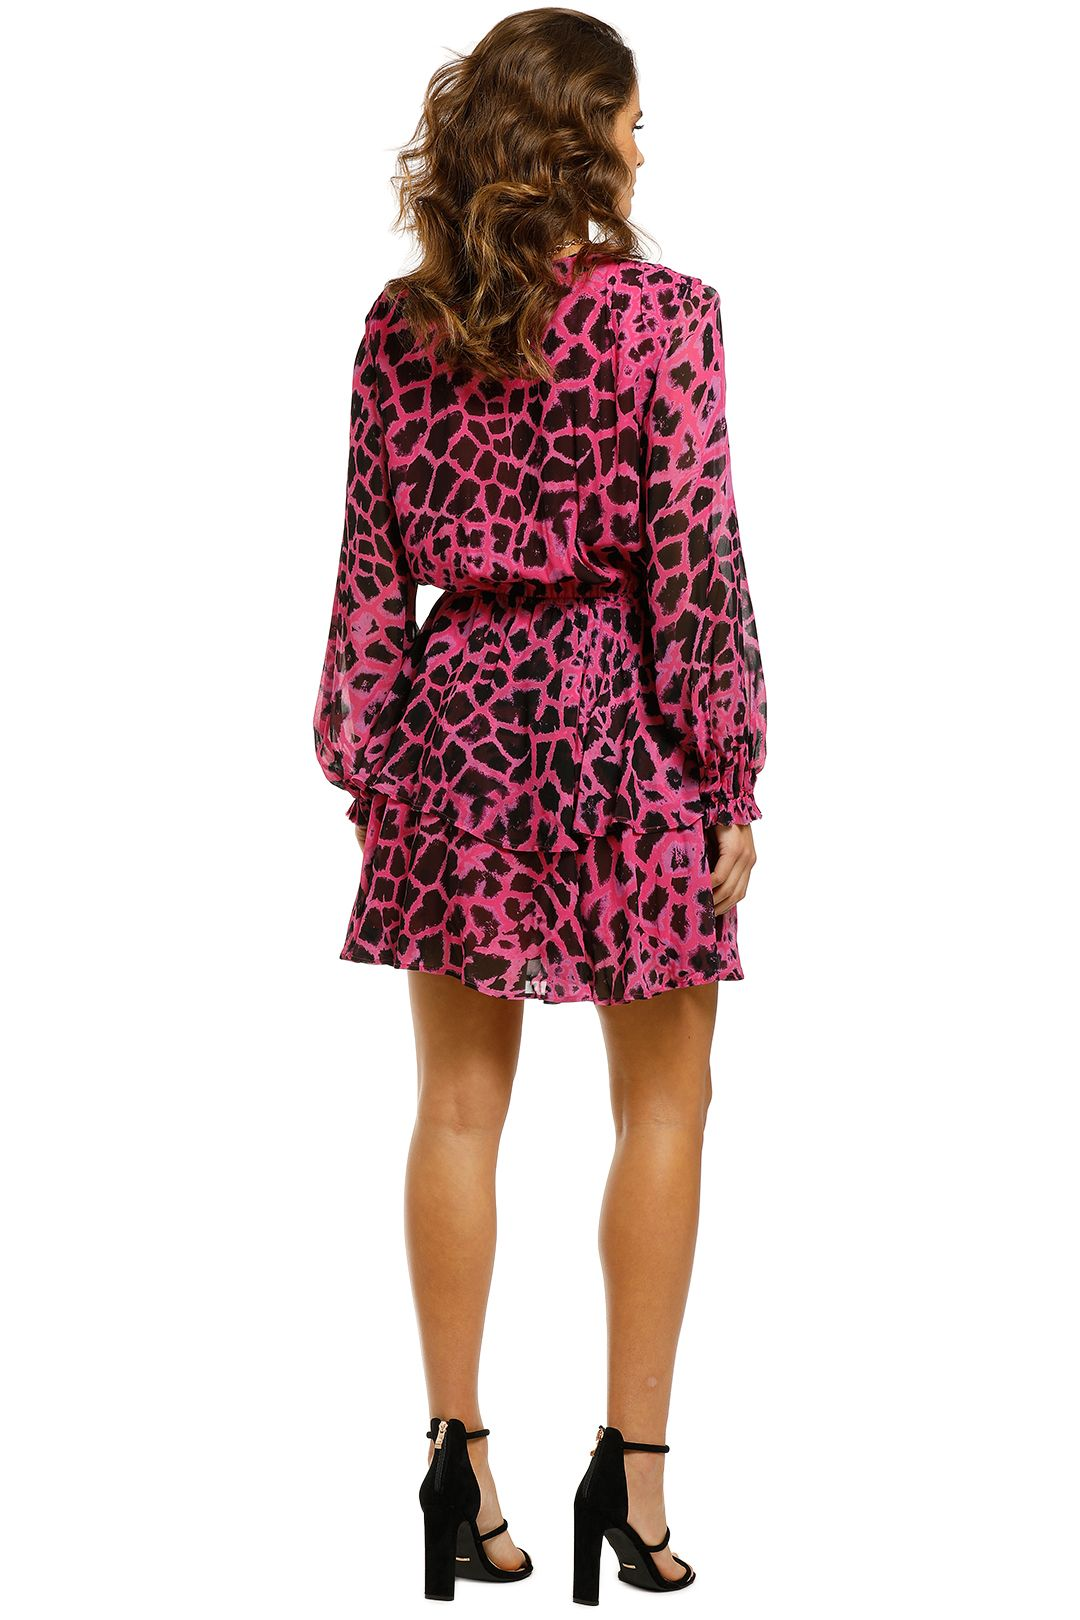 Husk-Zirafa-Dress-Pink-Giraffe-Back